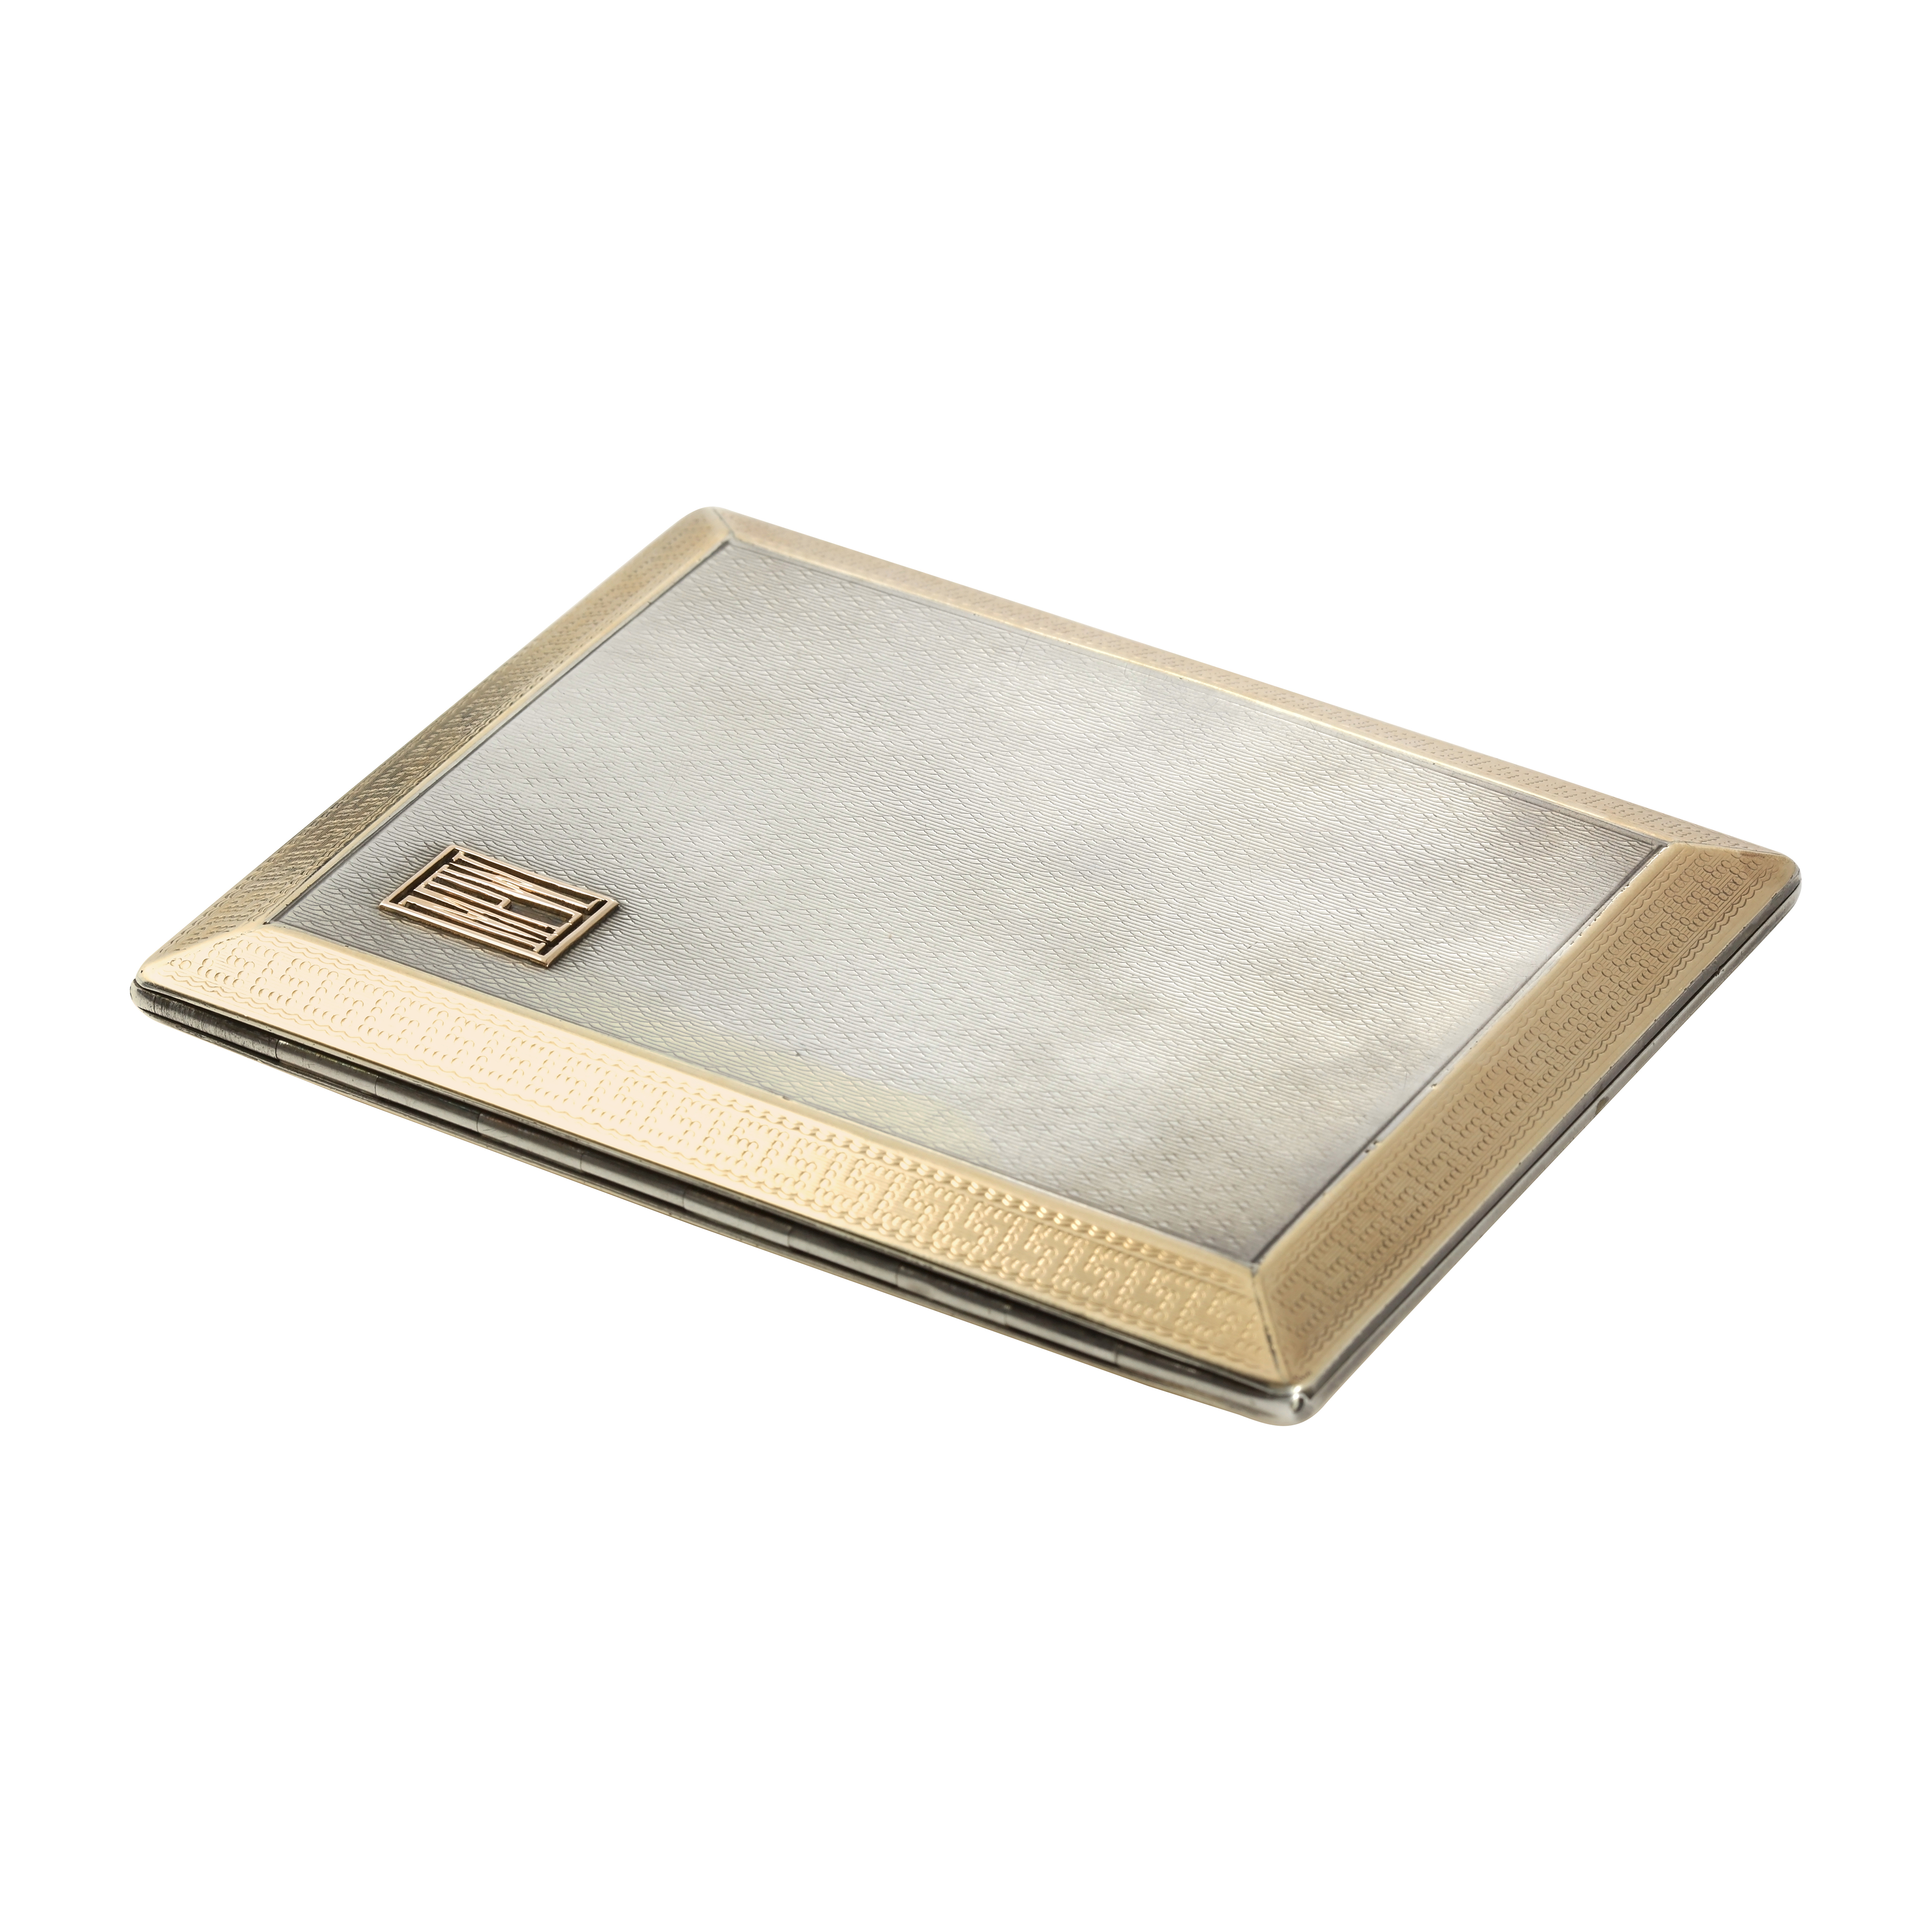 Los 98 - AN ANTIQUE SLIDING CIGARETTE CASE, ASPREY, LONDON 1933 in sterling silver and gold, of rectangular